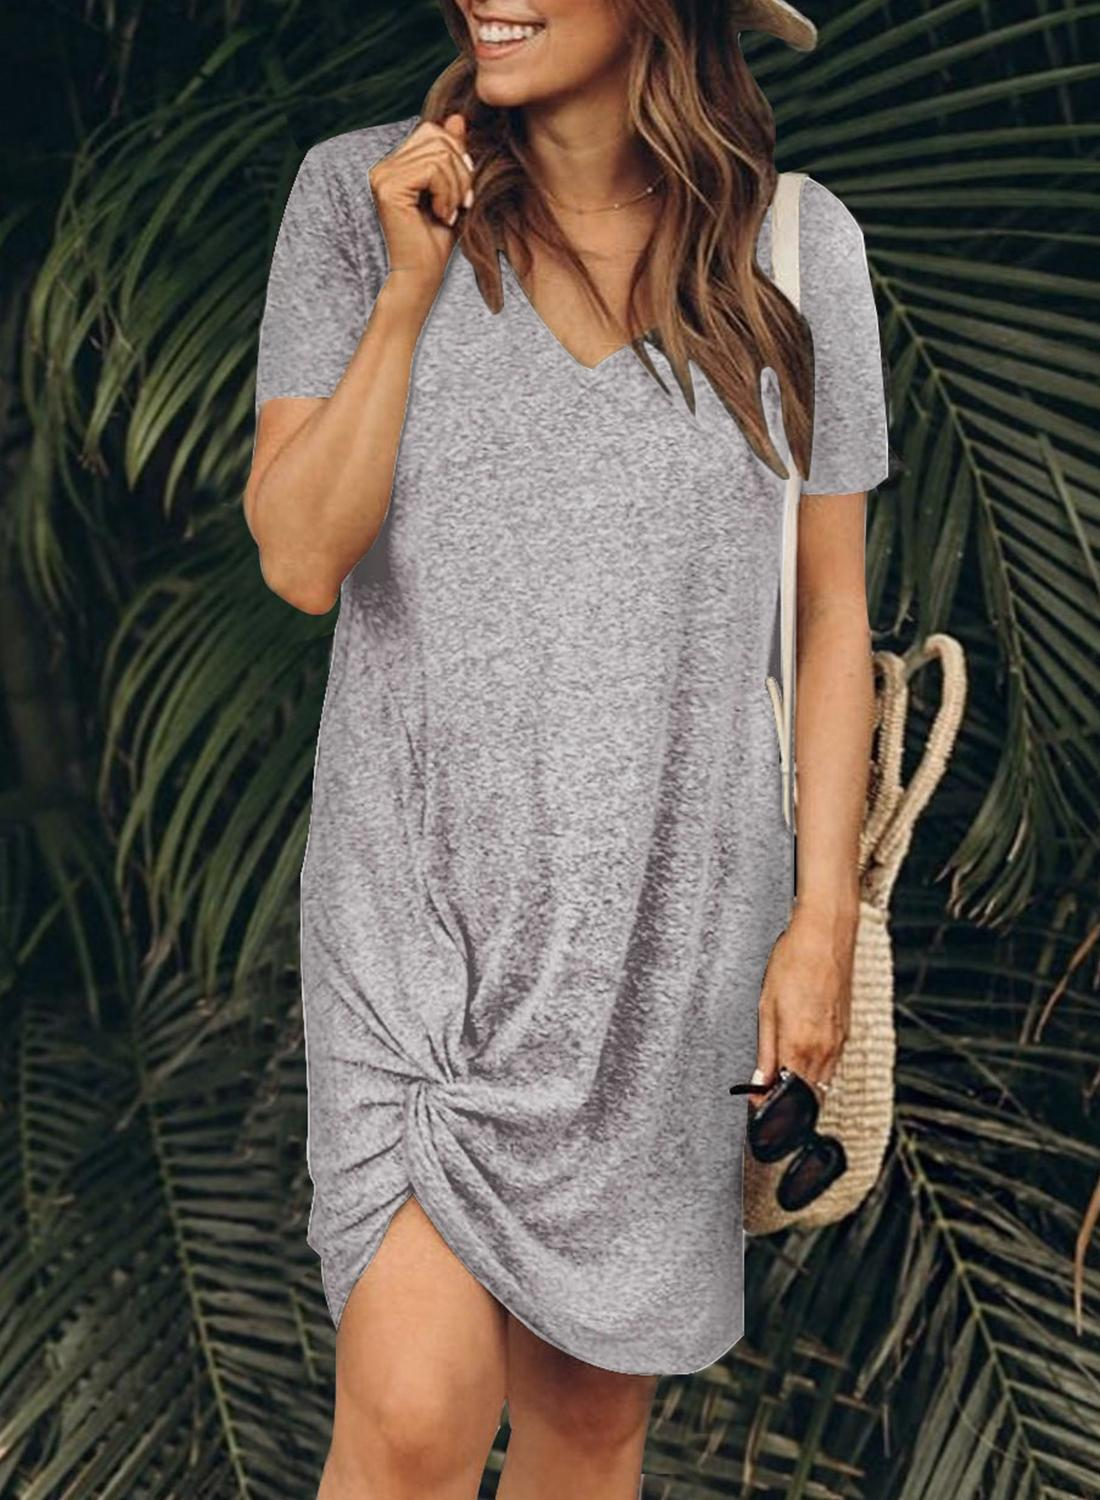 Women Clothing Designers The Best Gray The Triblend Side Knot Dress